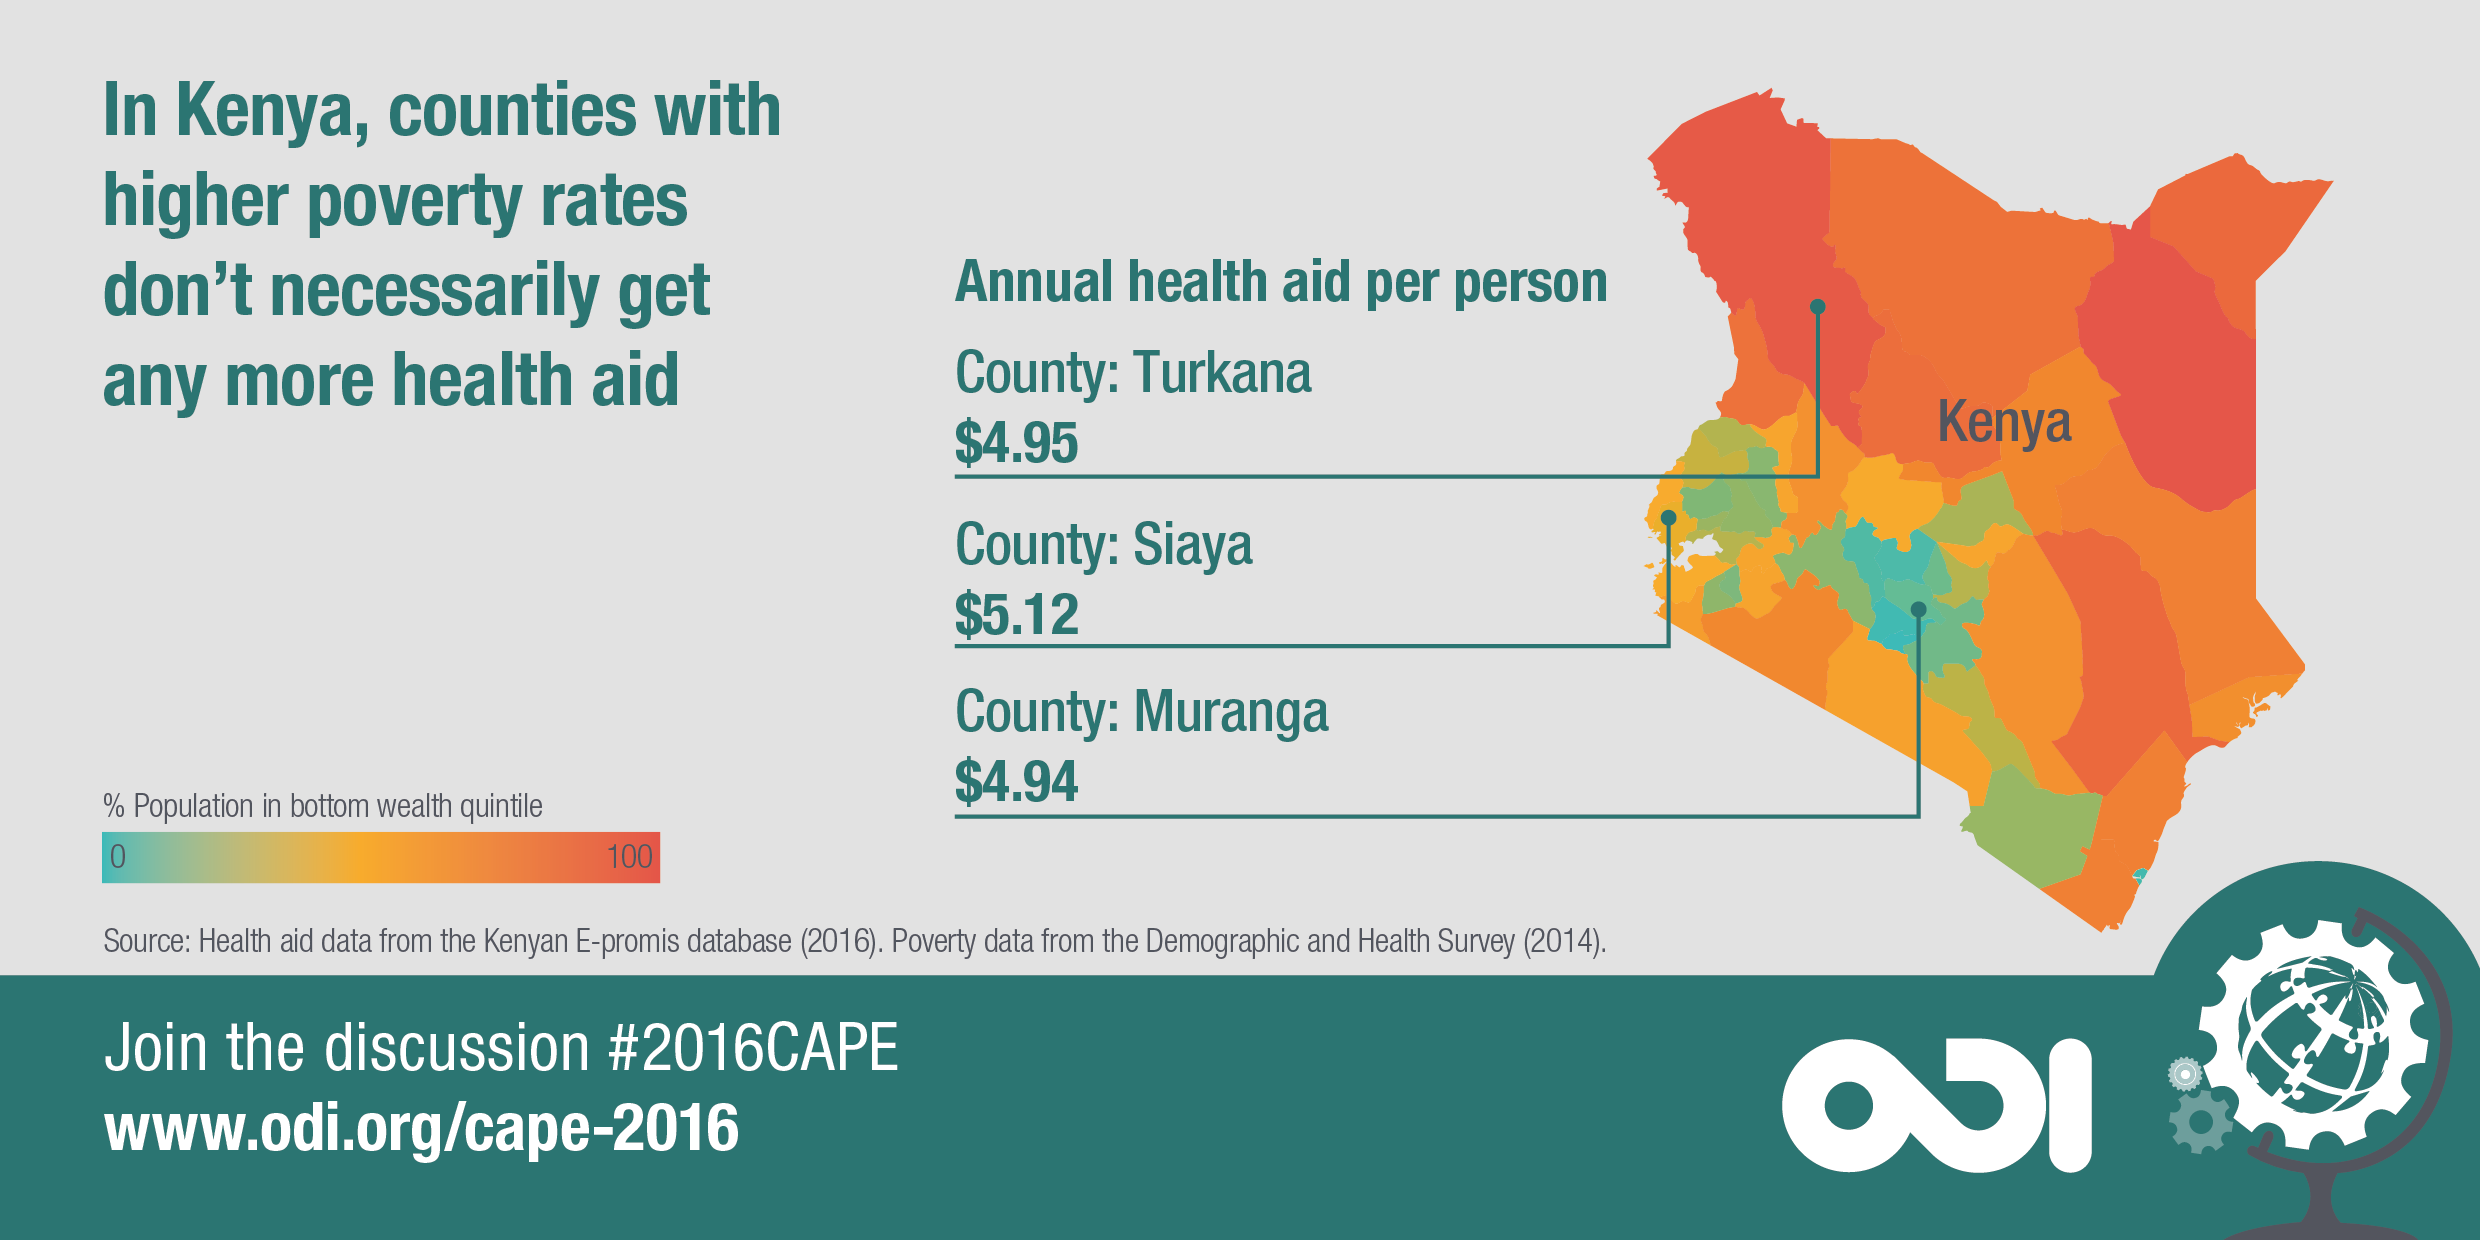 In Kenya, counties with higher poverty rates don't necessarily get more health aid.